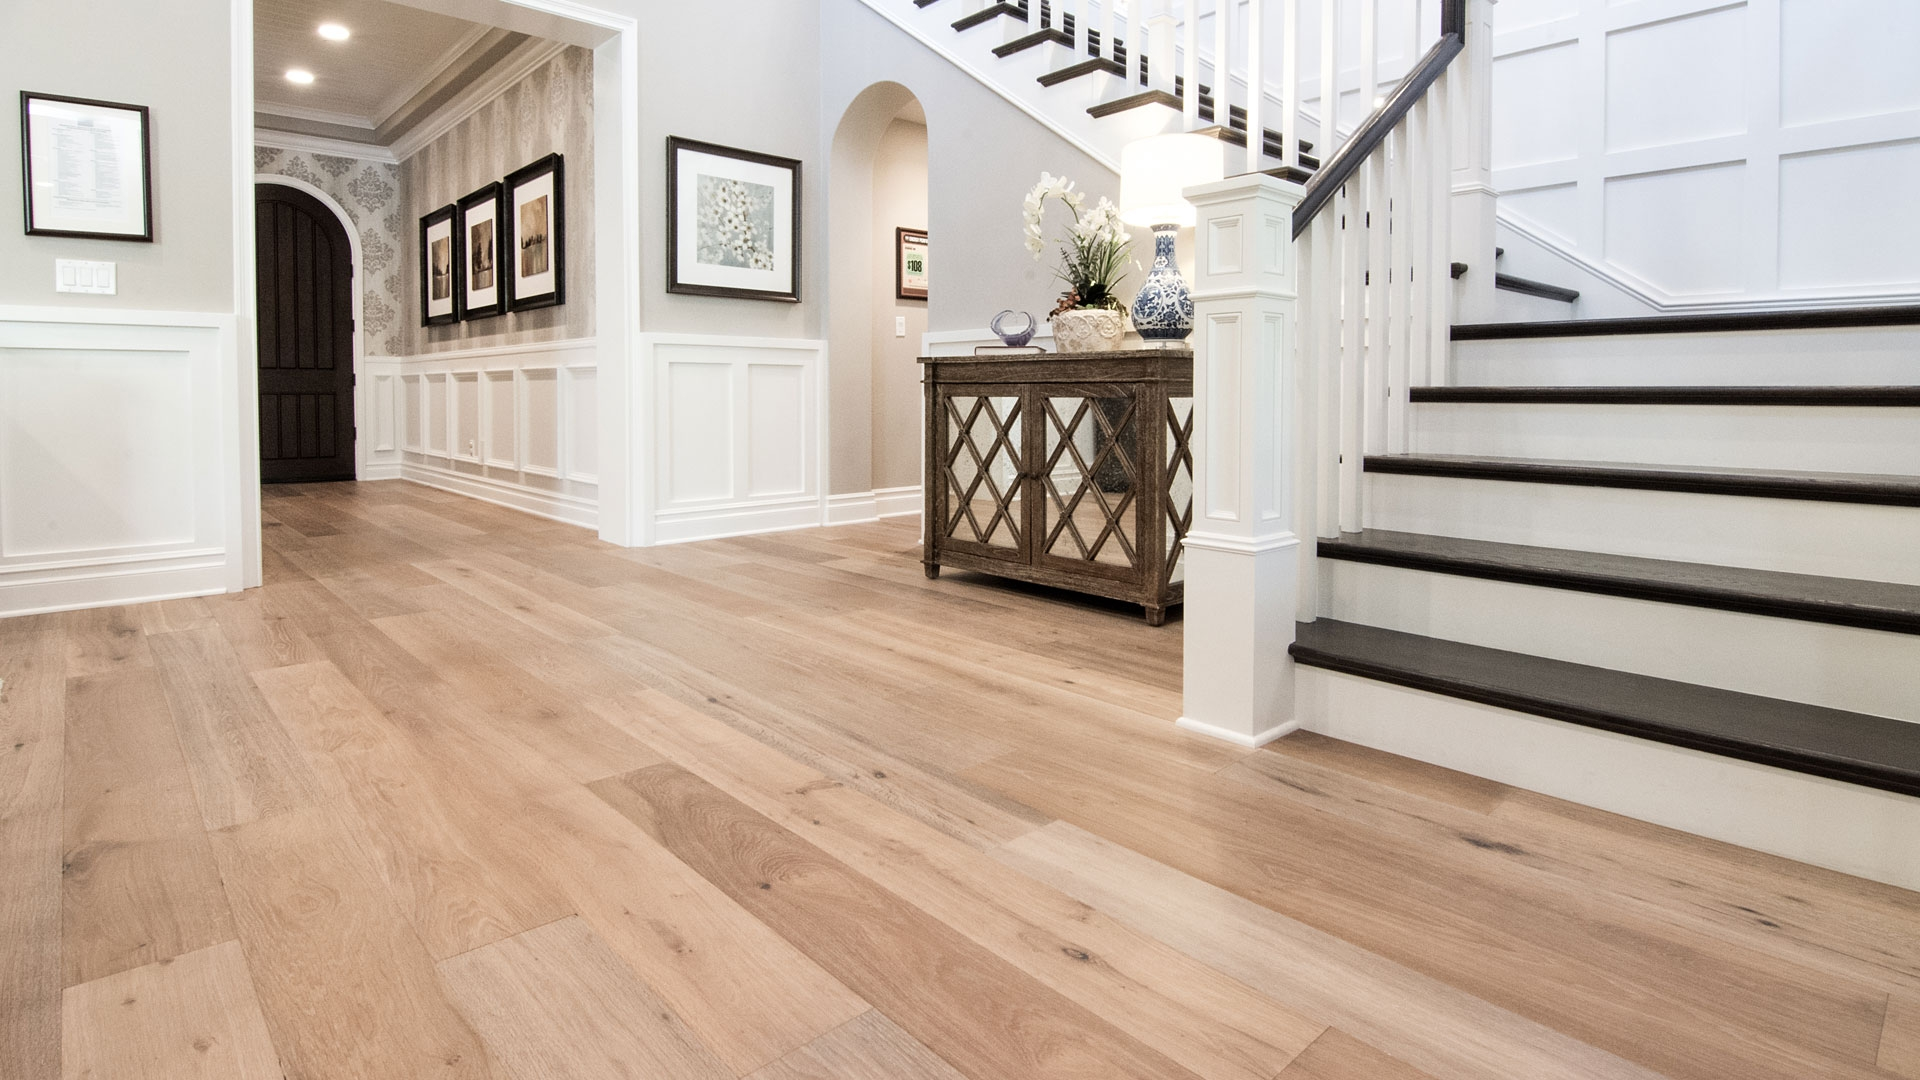 Permalink to Provenza Wood Flooring Complaints